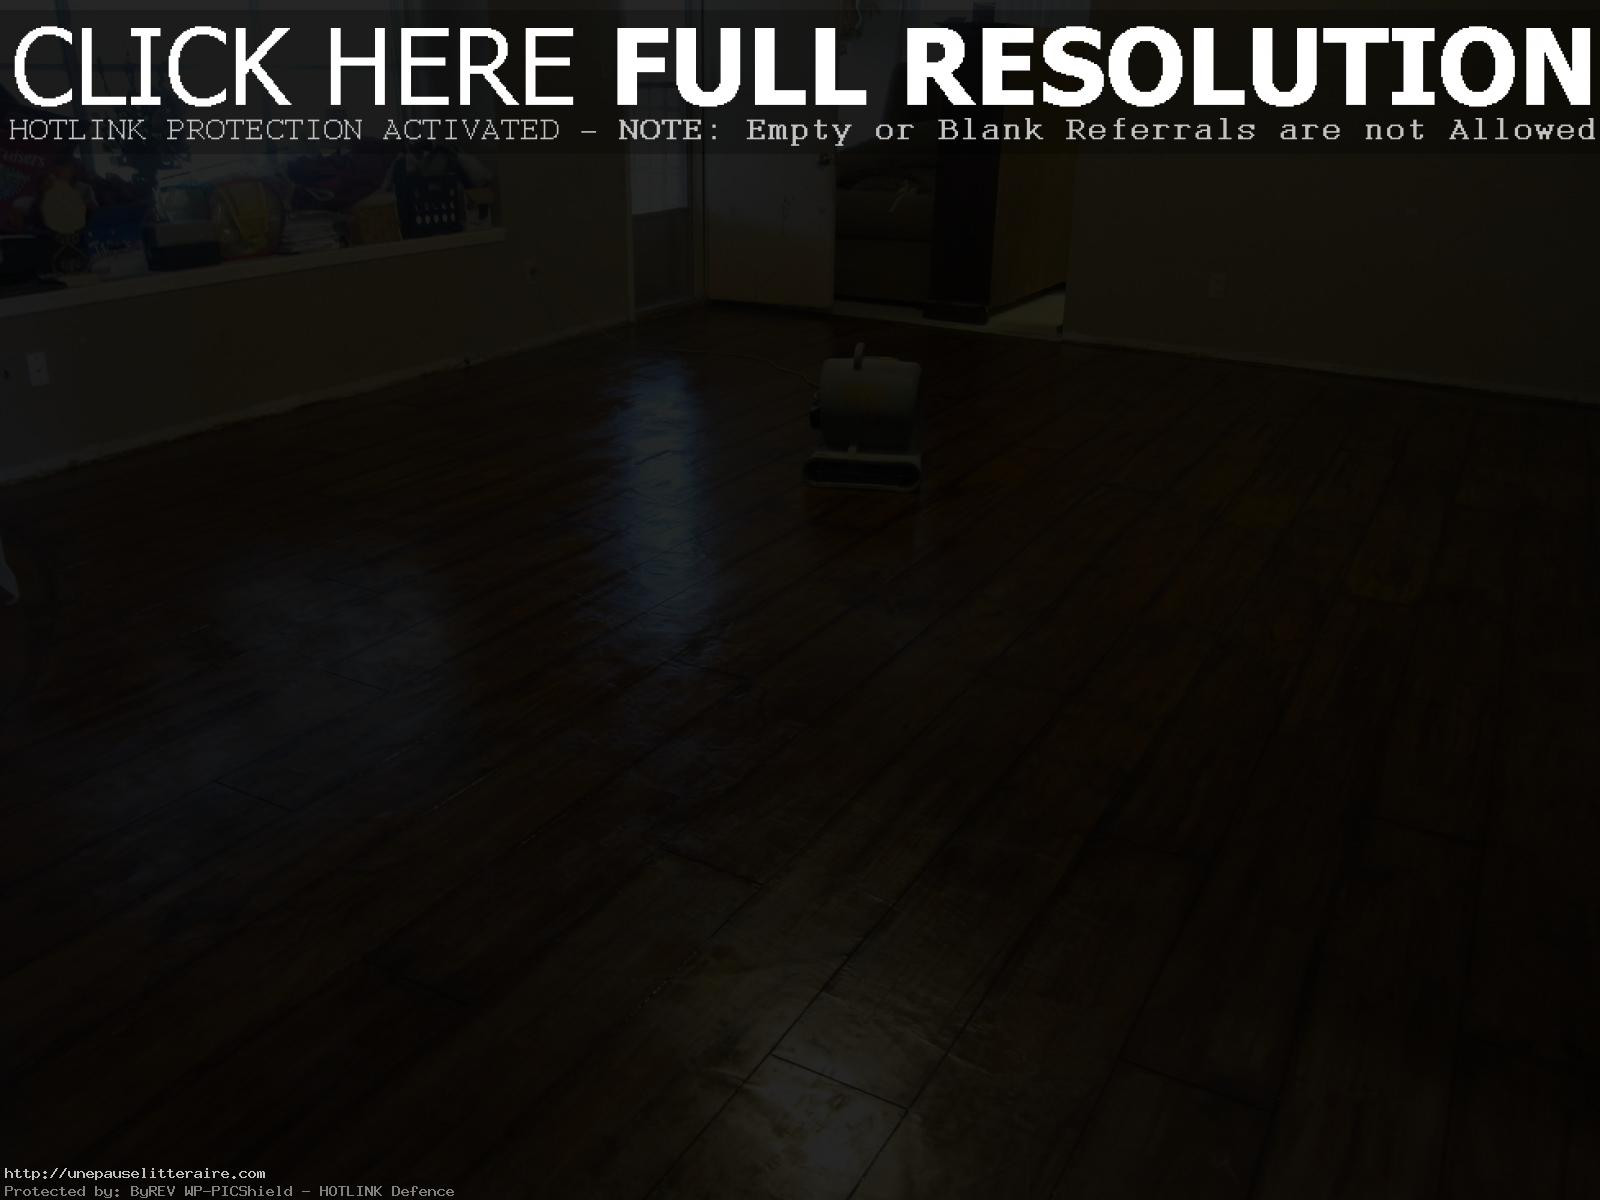 painting hardwood floors without sanding of how to paint concrete floors to look like tile gallery of wood and regarding decoration inside house painting concrete floor with white color how to paint concrete floors to look like tile